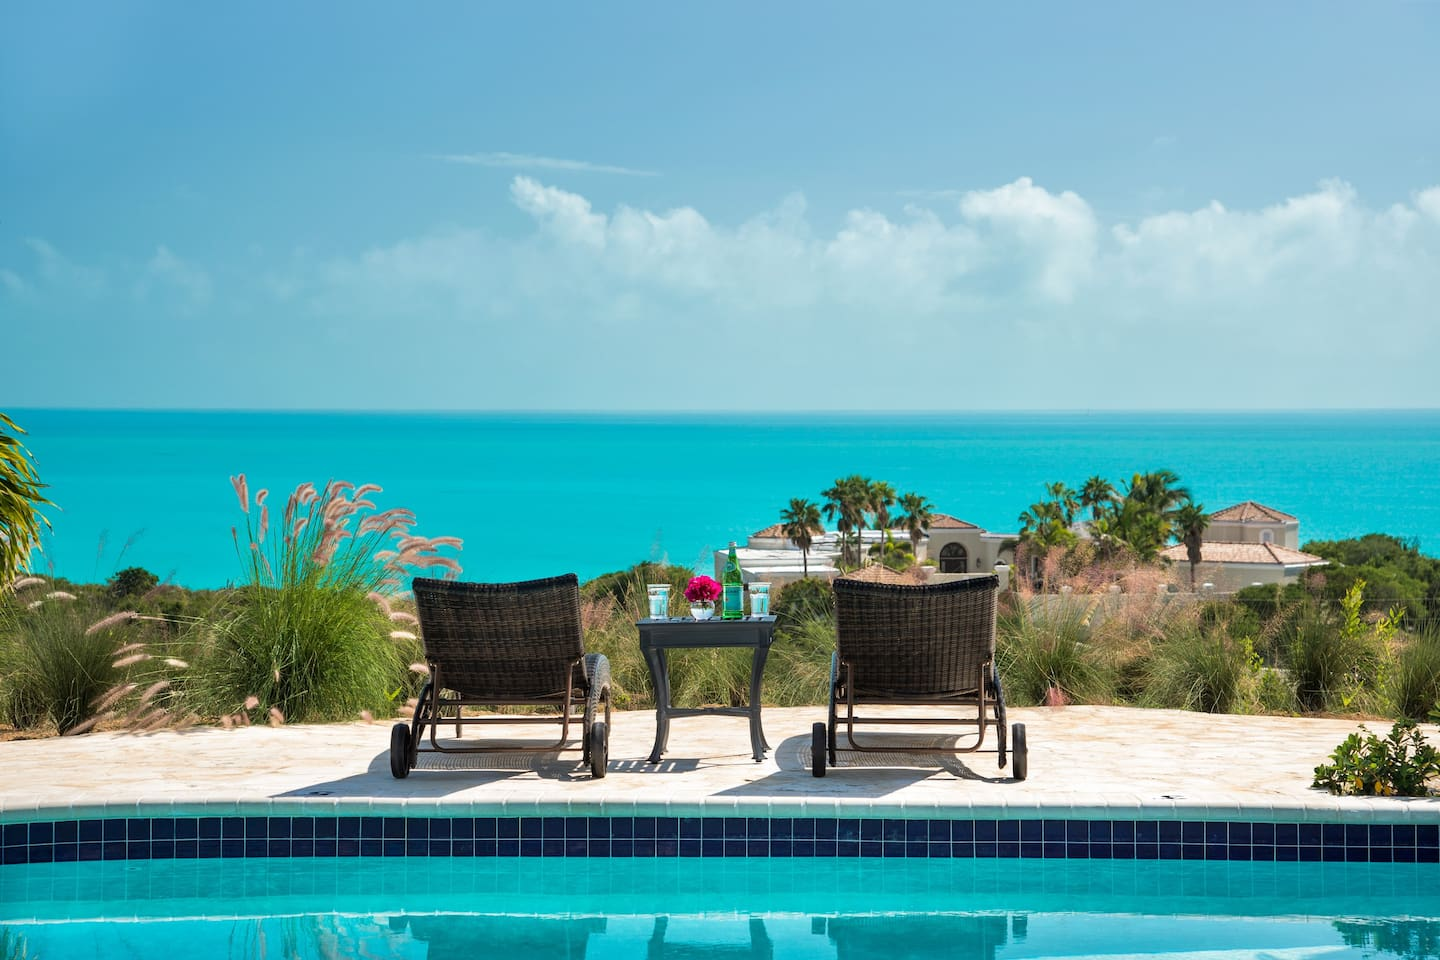 No better place to sip a drink overlooking the Caicos bank